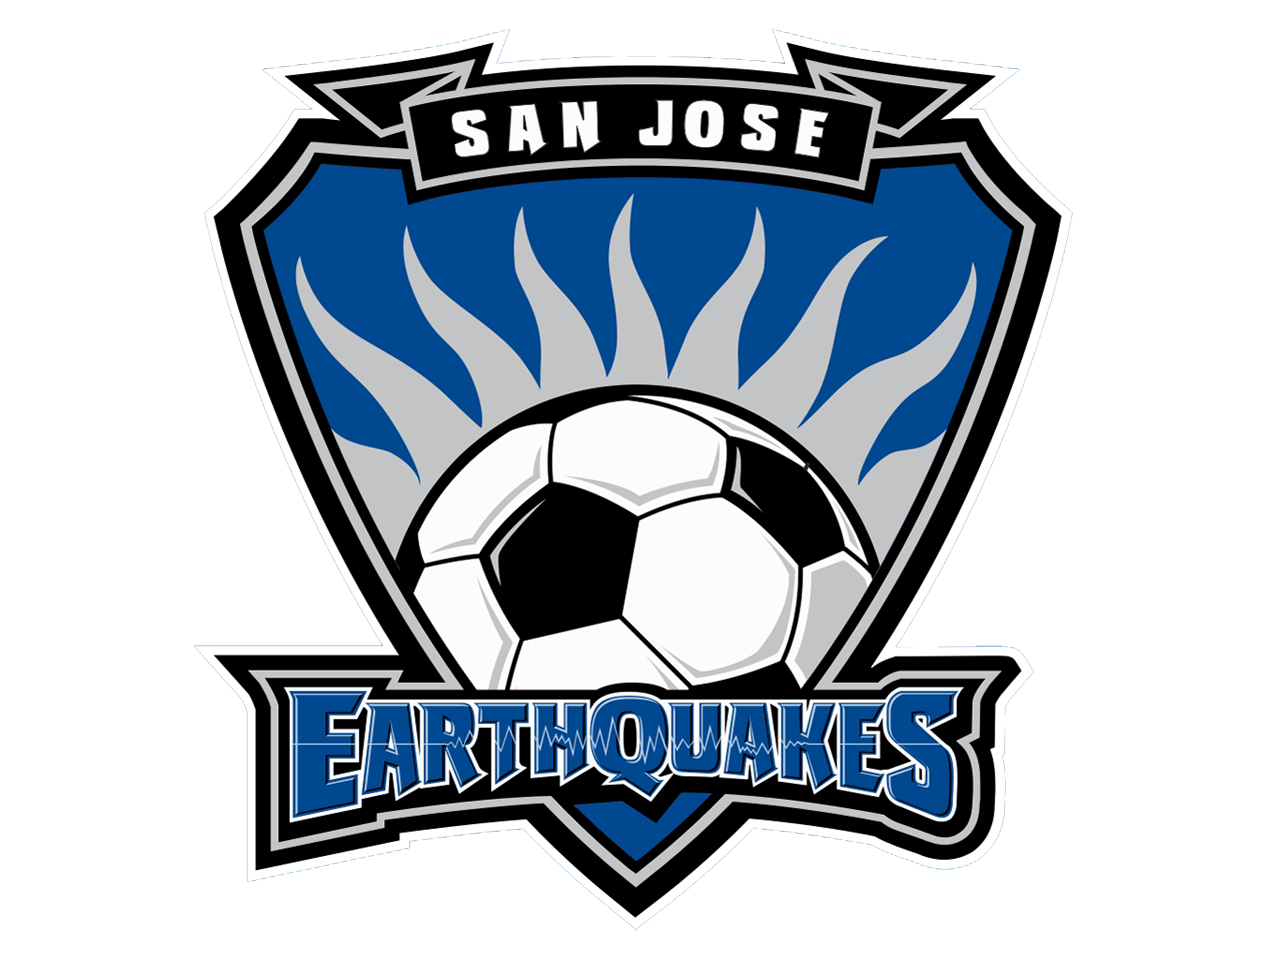 san jose earthquakes logo png wallpaper Football Pictures and Photos 1280x960